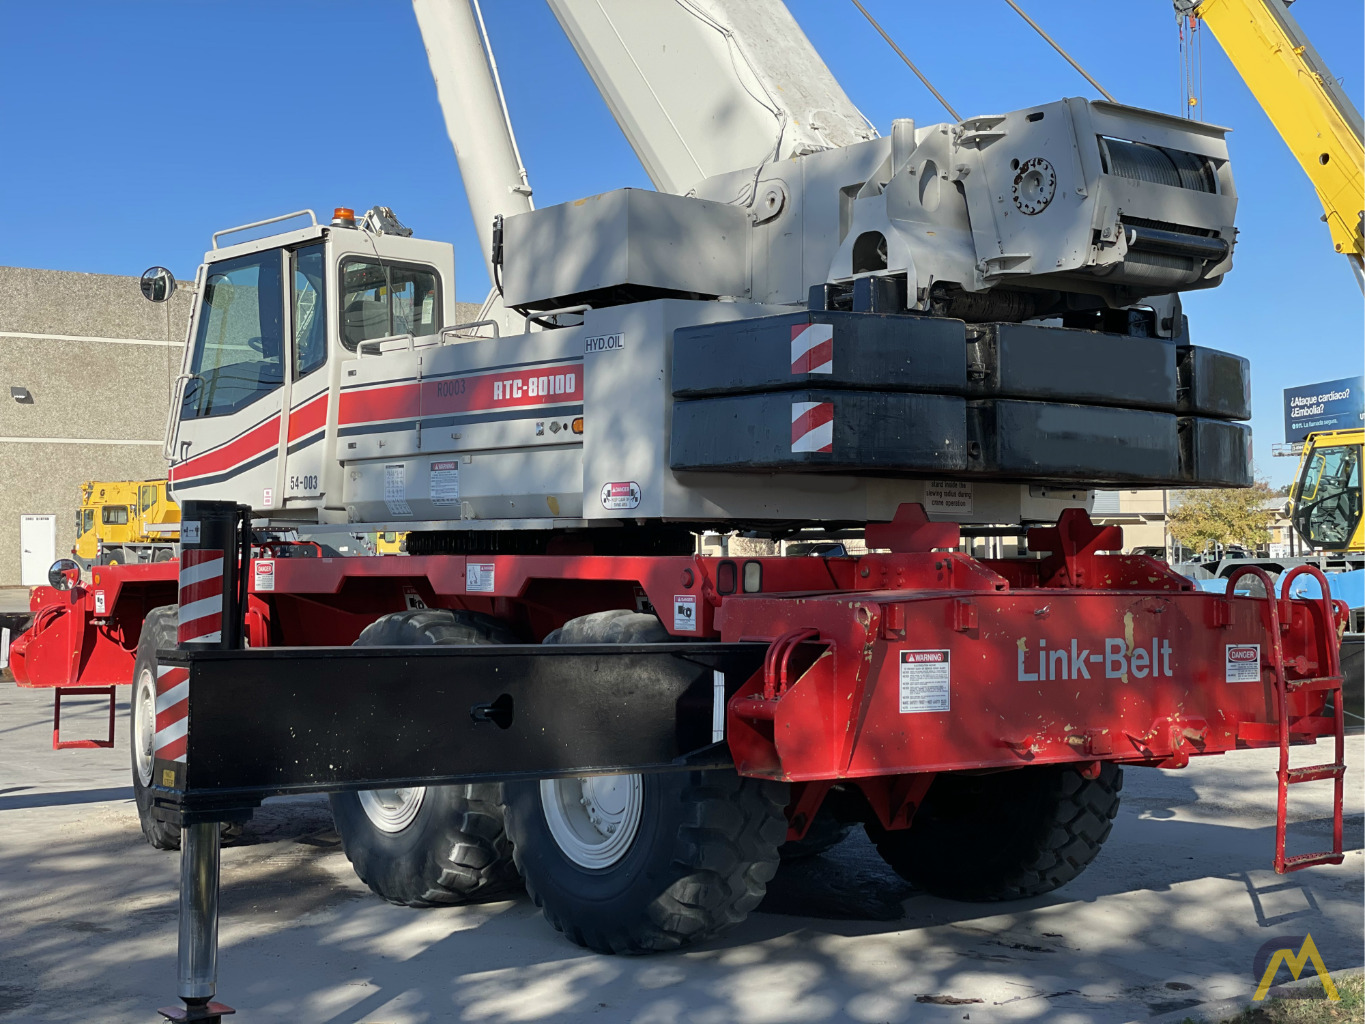 Link-Belt RTC-80100 100-Ton Rough Terrain Crane 4